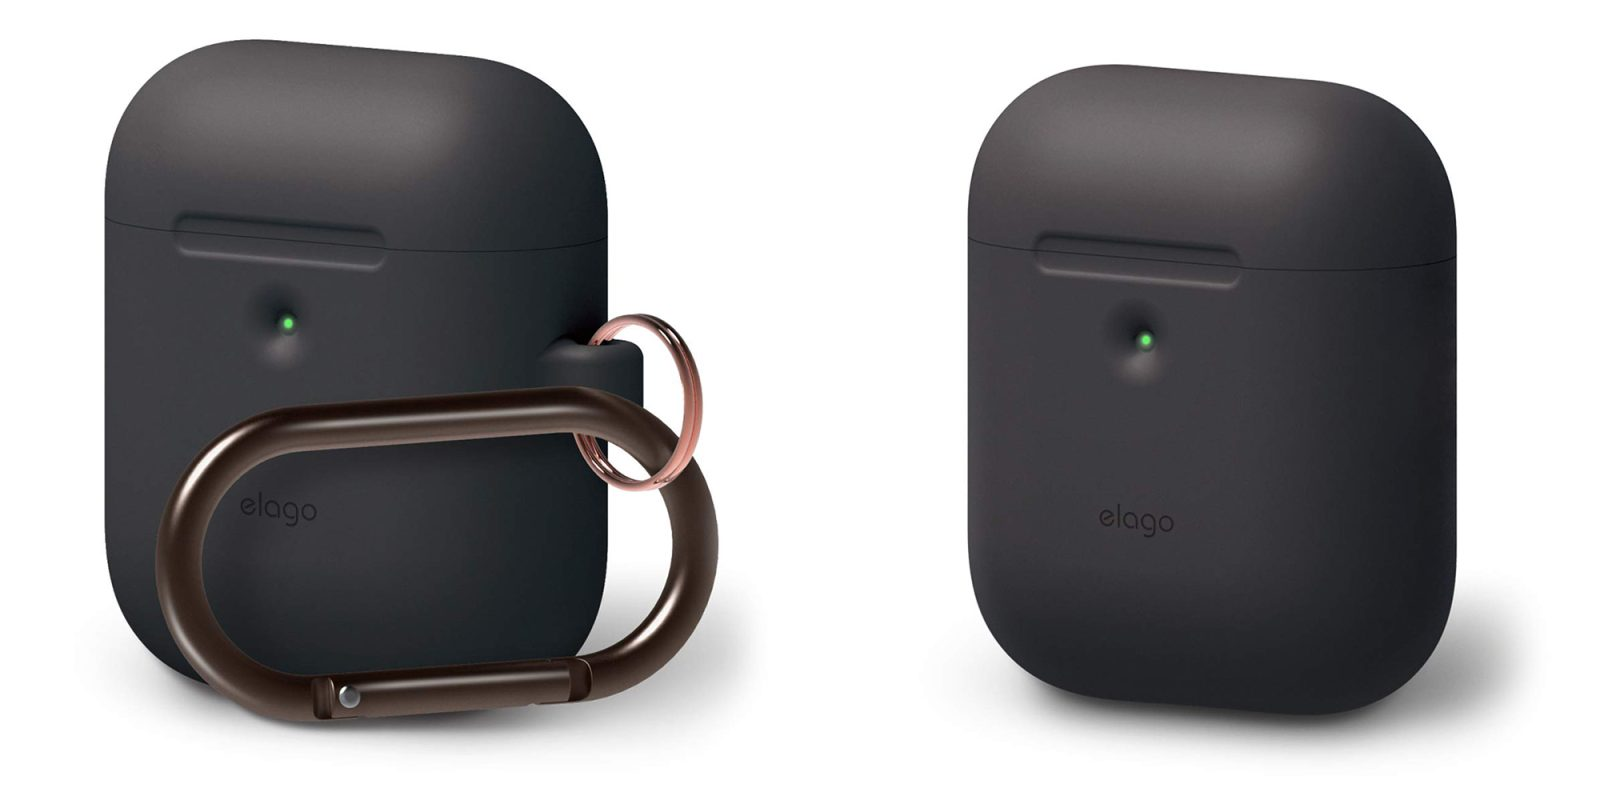 Elago's new $8 A2 AirPods silicone case is made for wireless charging